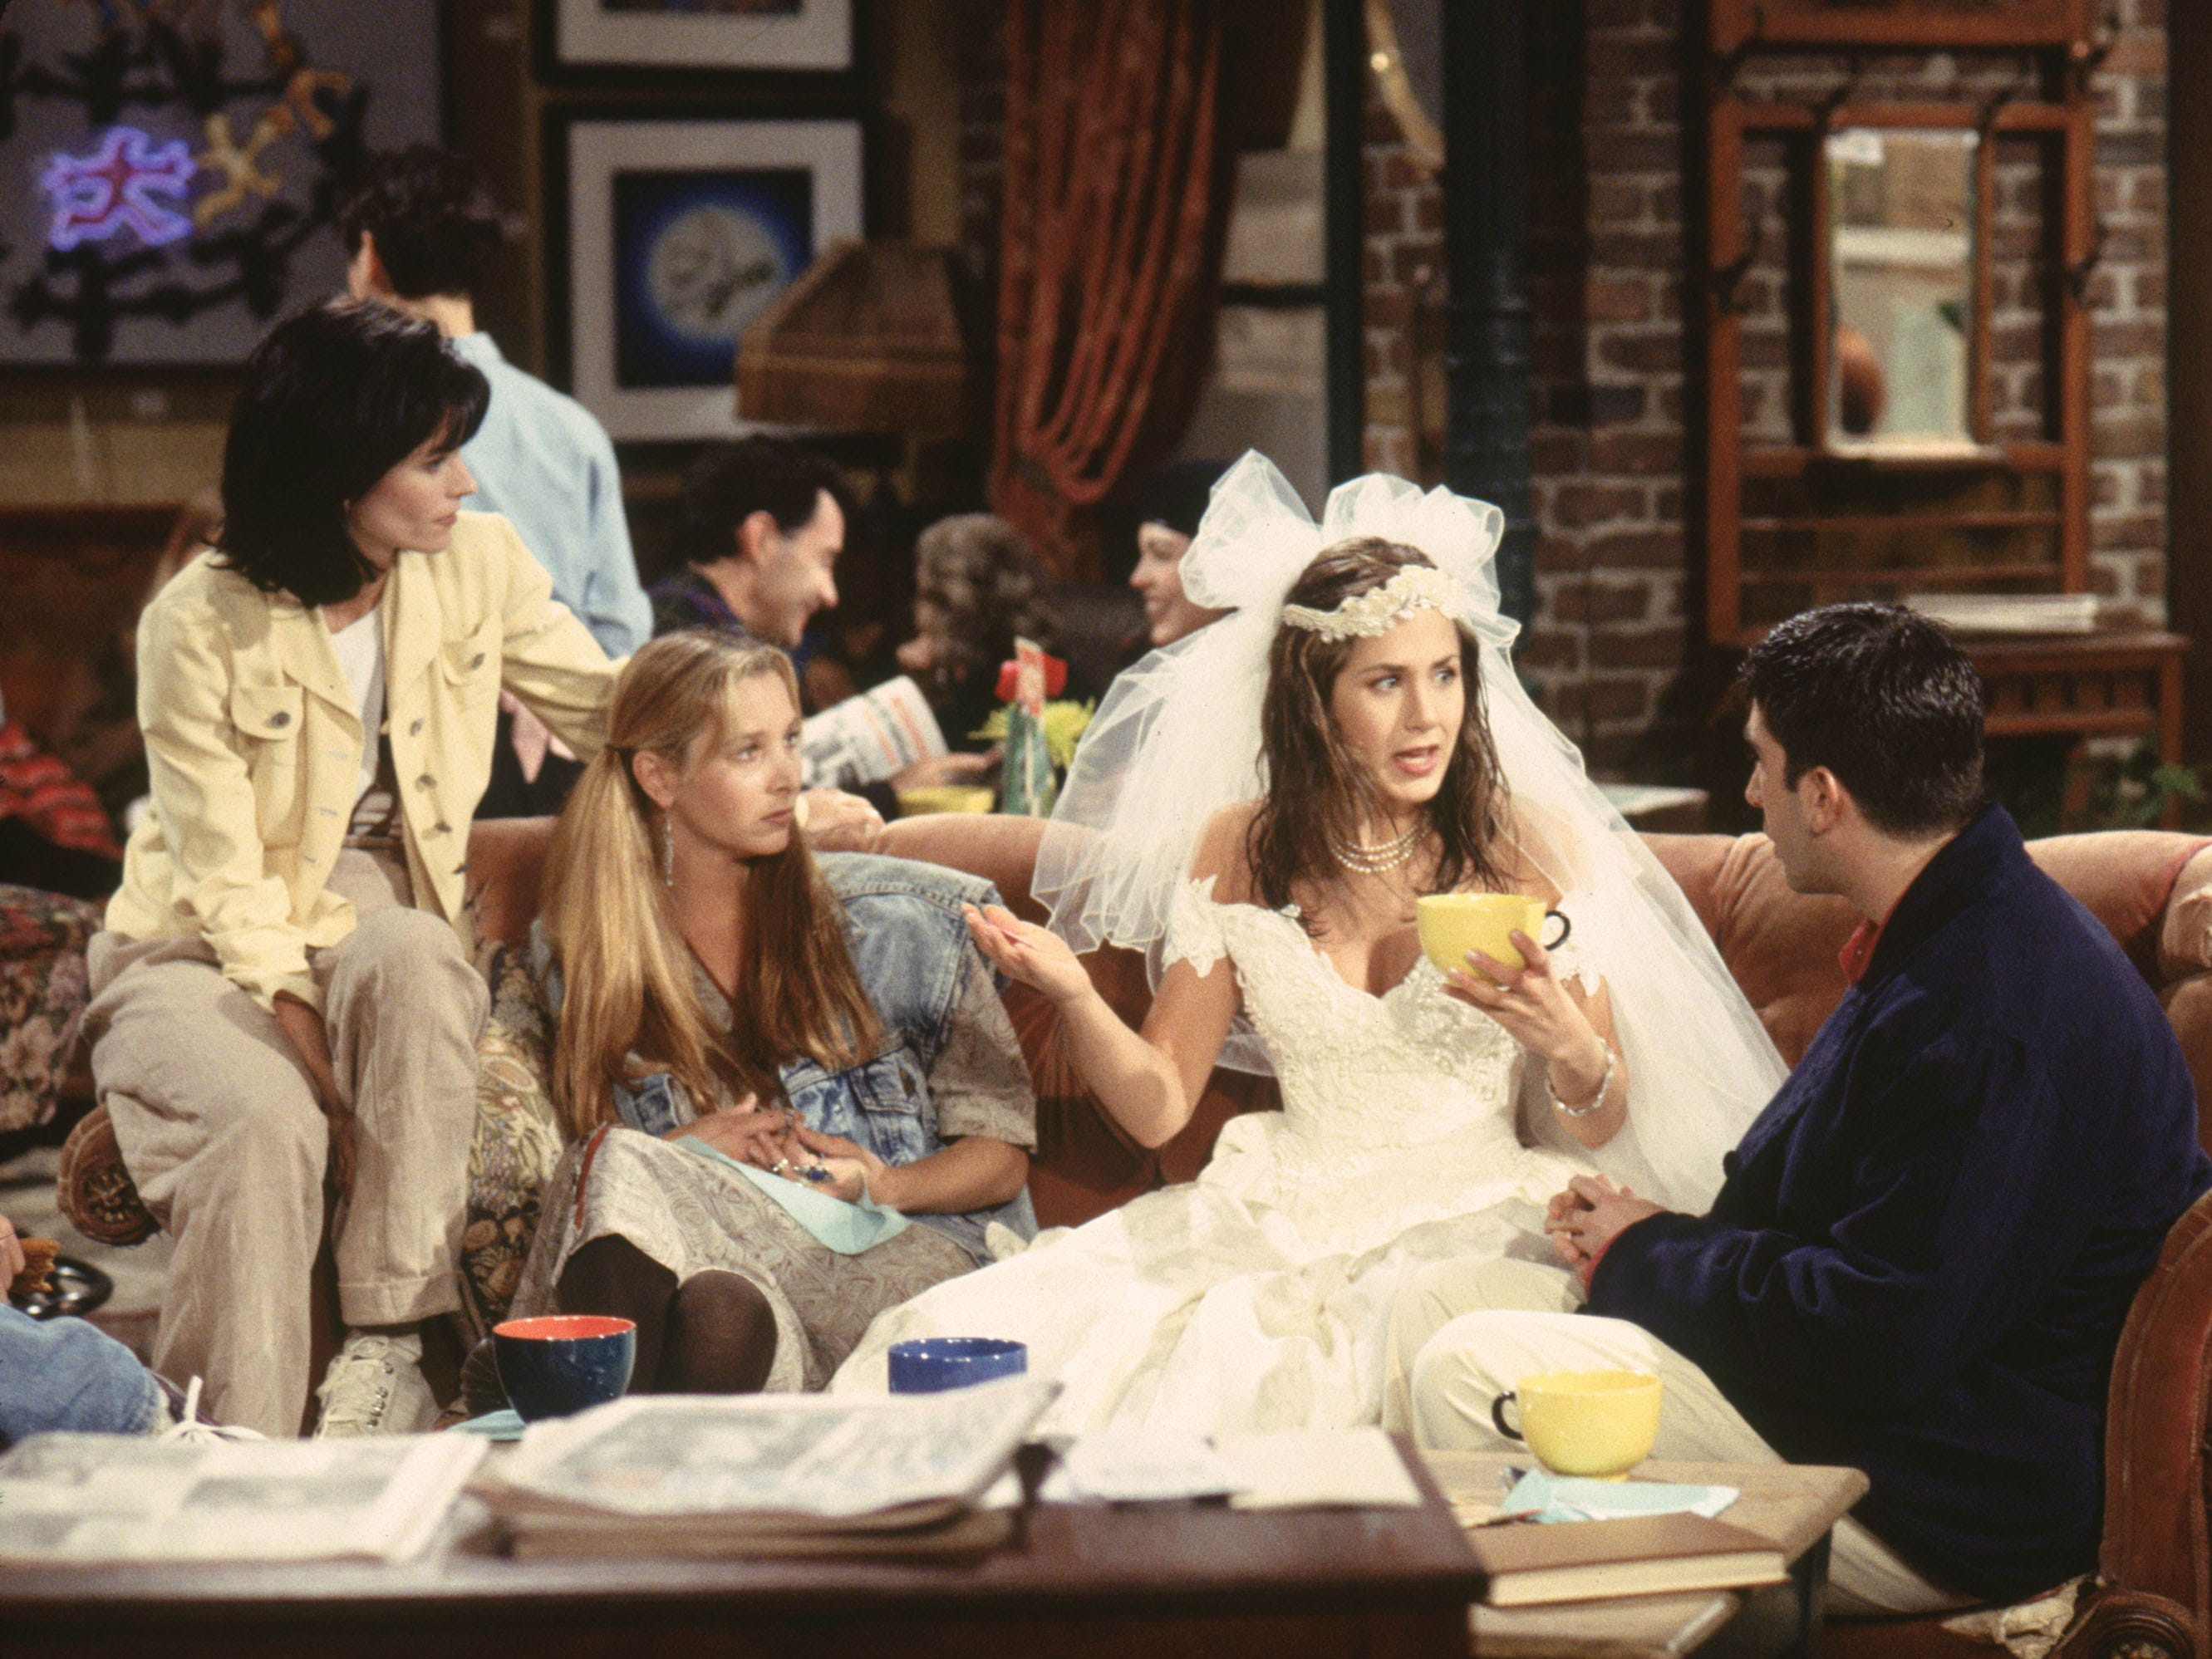 """For many Americans, their initial glimpse of Aniston was that of a wet runaway bride in the """"Friends""""  pilot. Her first scene found her character, Rachel Green, reuniting with high school friend Monica Geller (Courteney Cox, left) in Central Perk after ditching her fiance at the altar."""